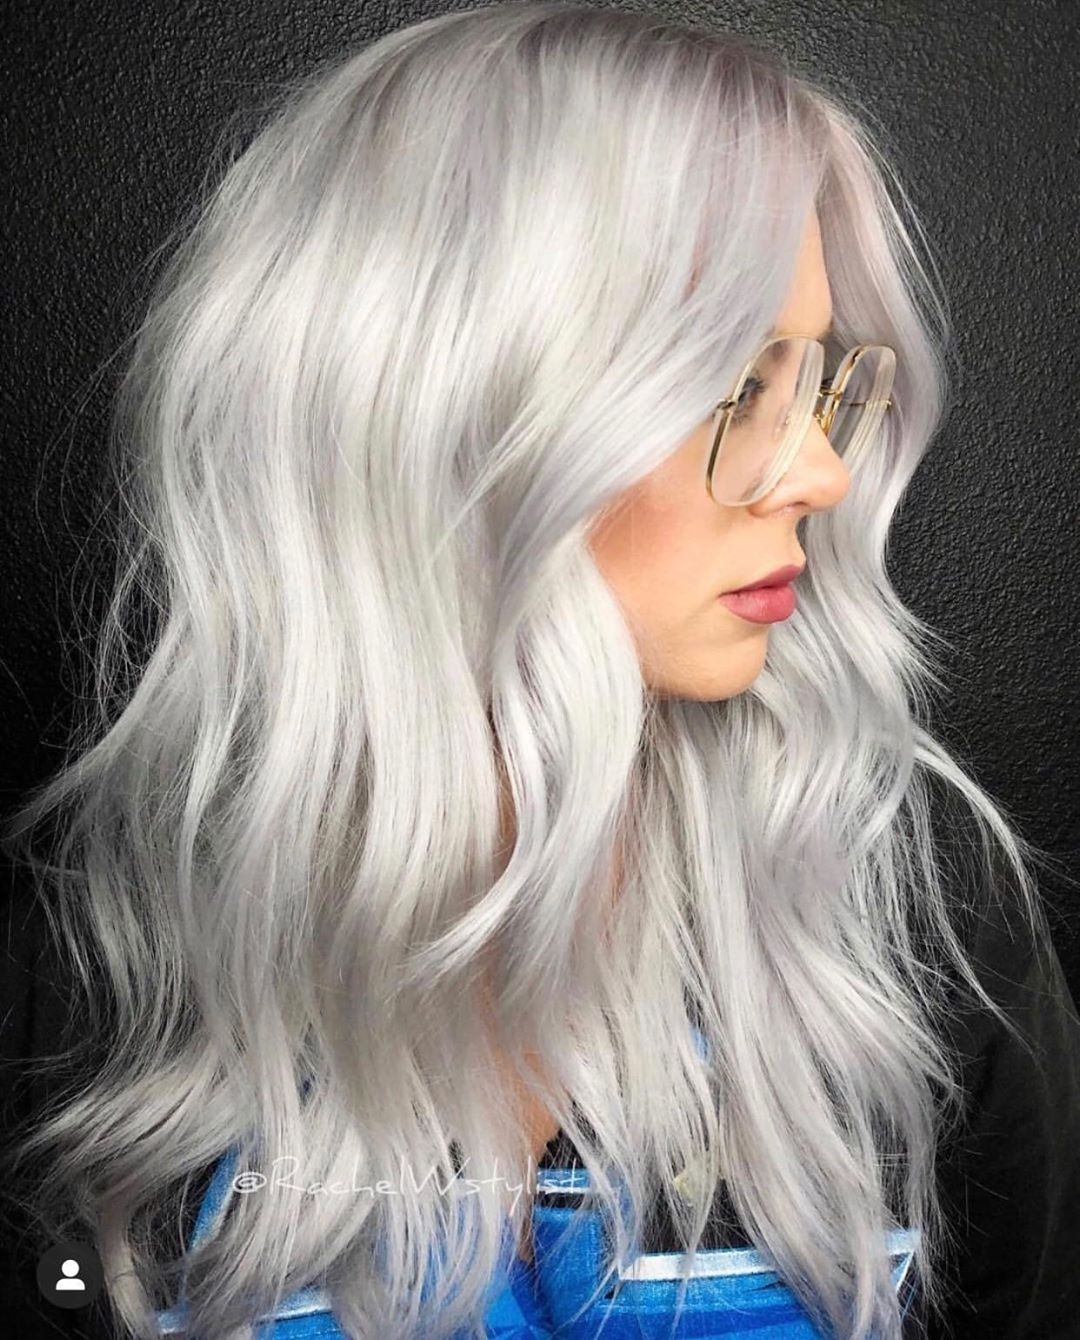 Female Long Hair Styles with Color Trends - Women Long Hairstyles and Haircuts in 2021 - PoPular ...